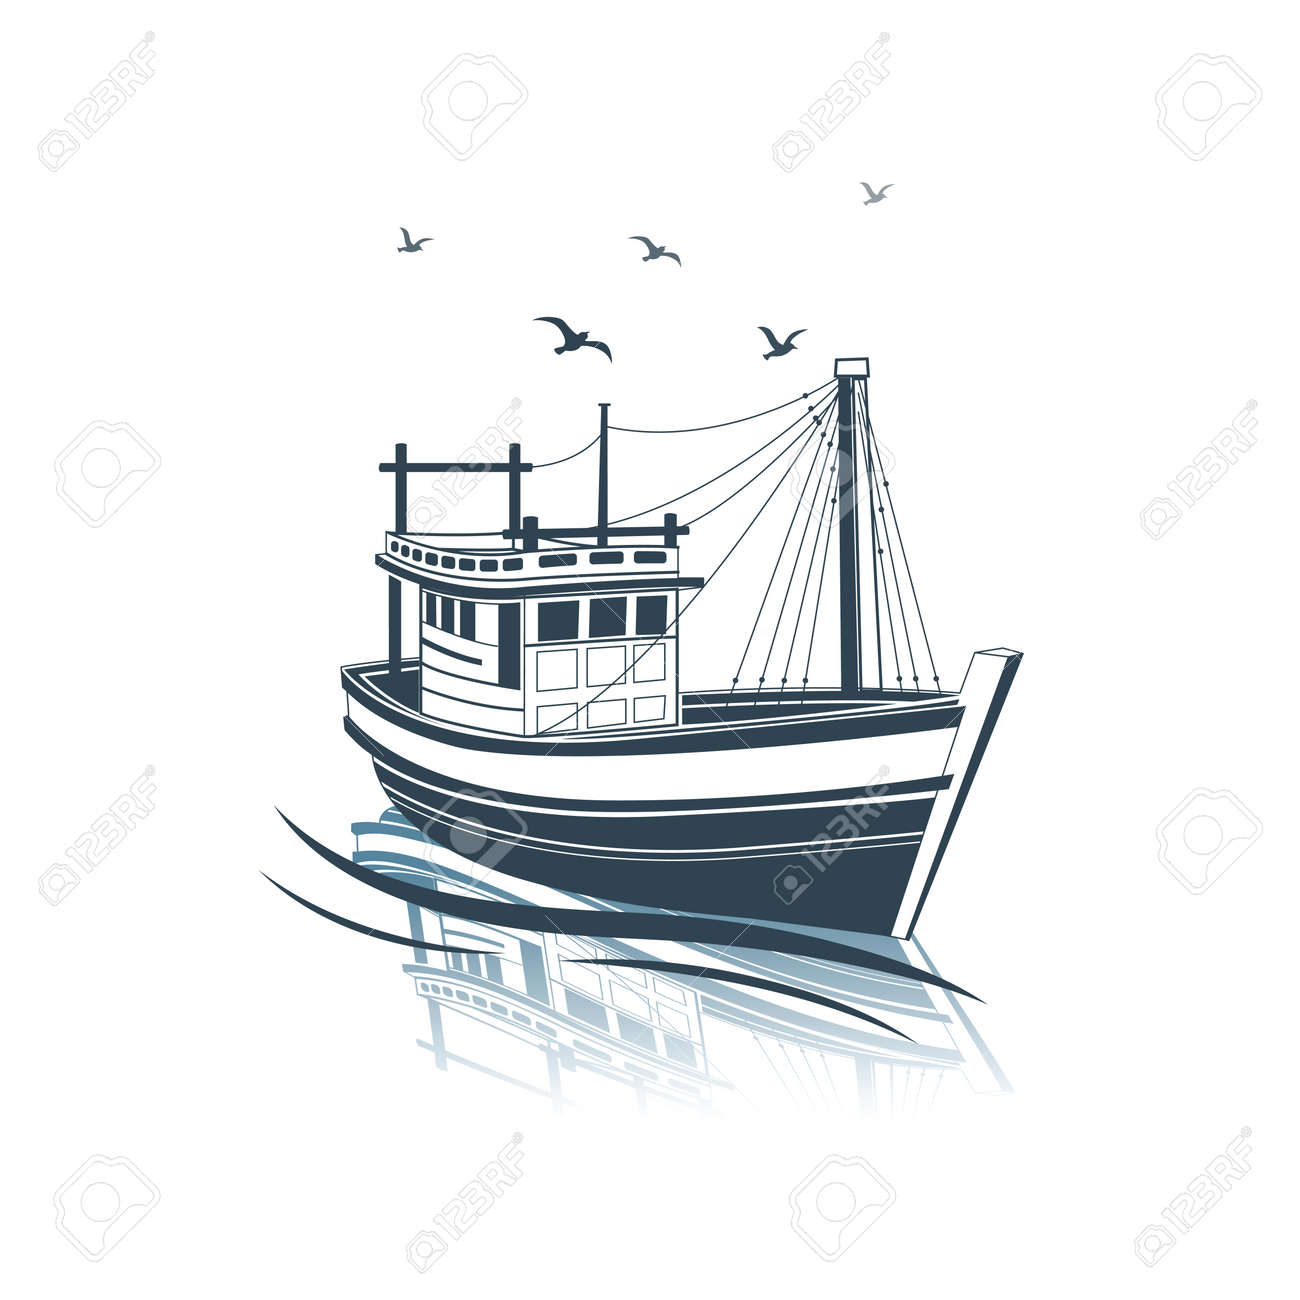 Fishing Boat side view on sea , vector illustration Stock Vector - 45239395